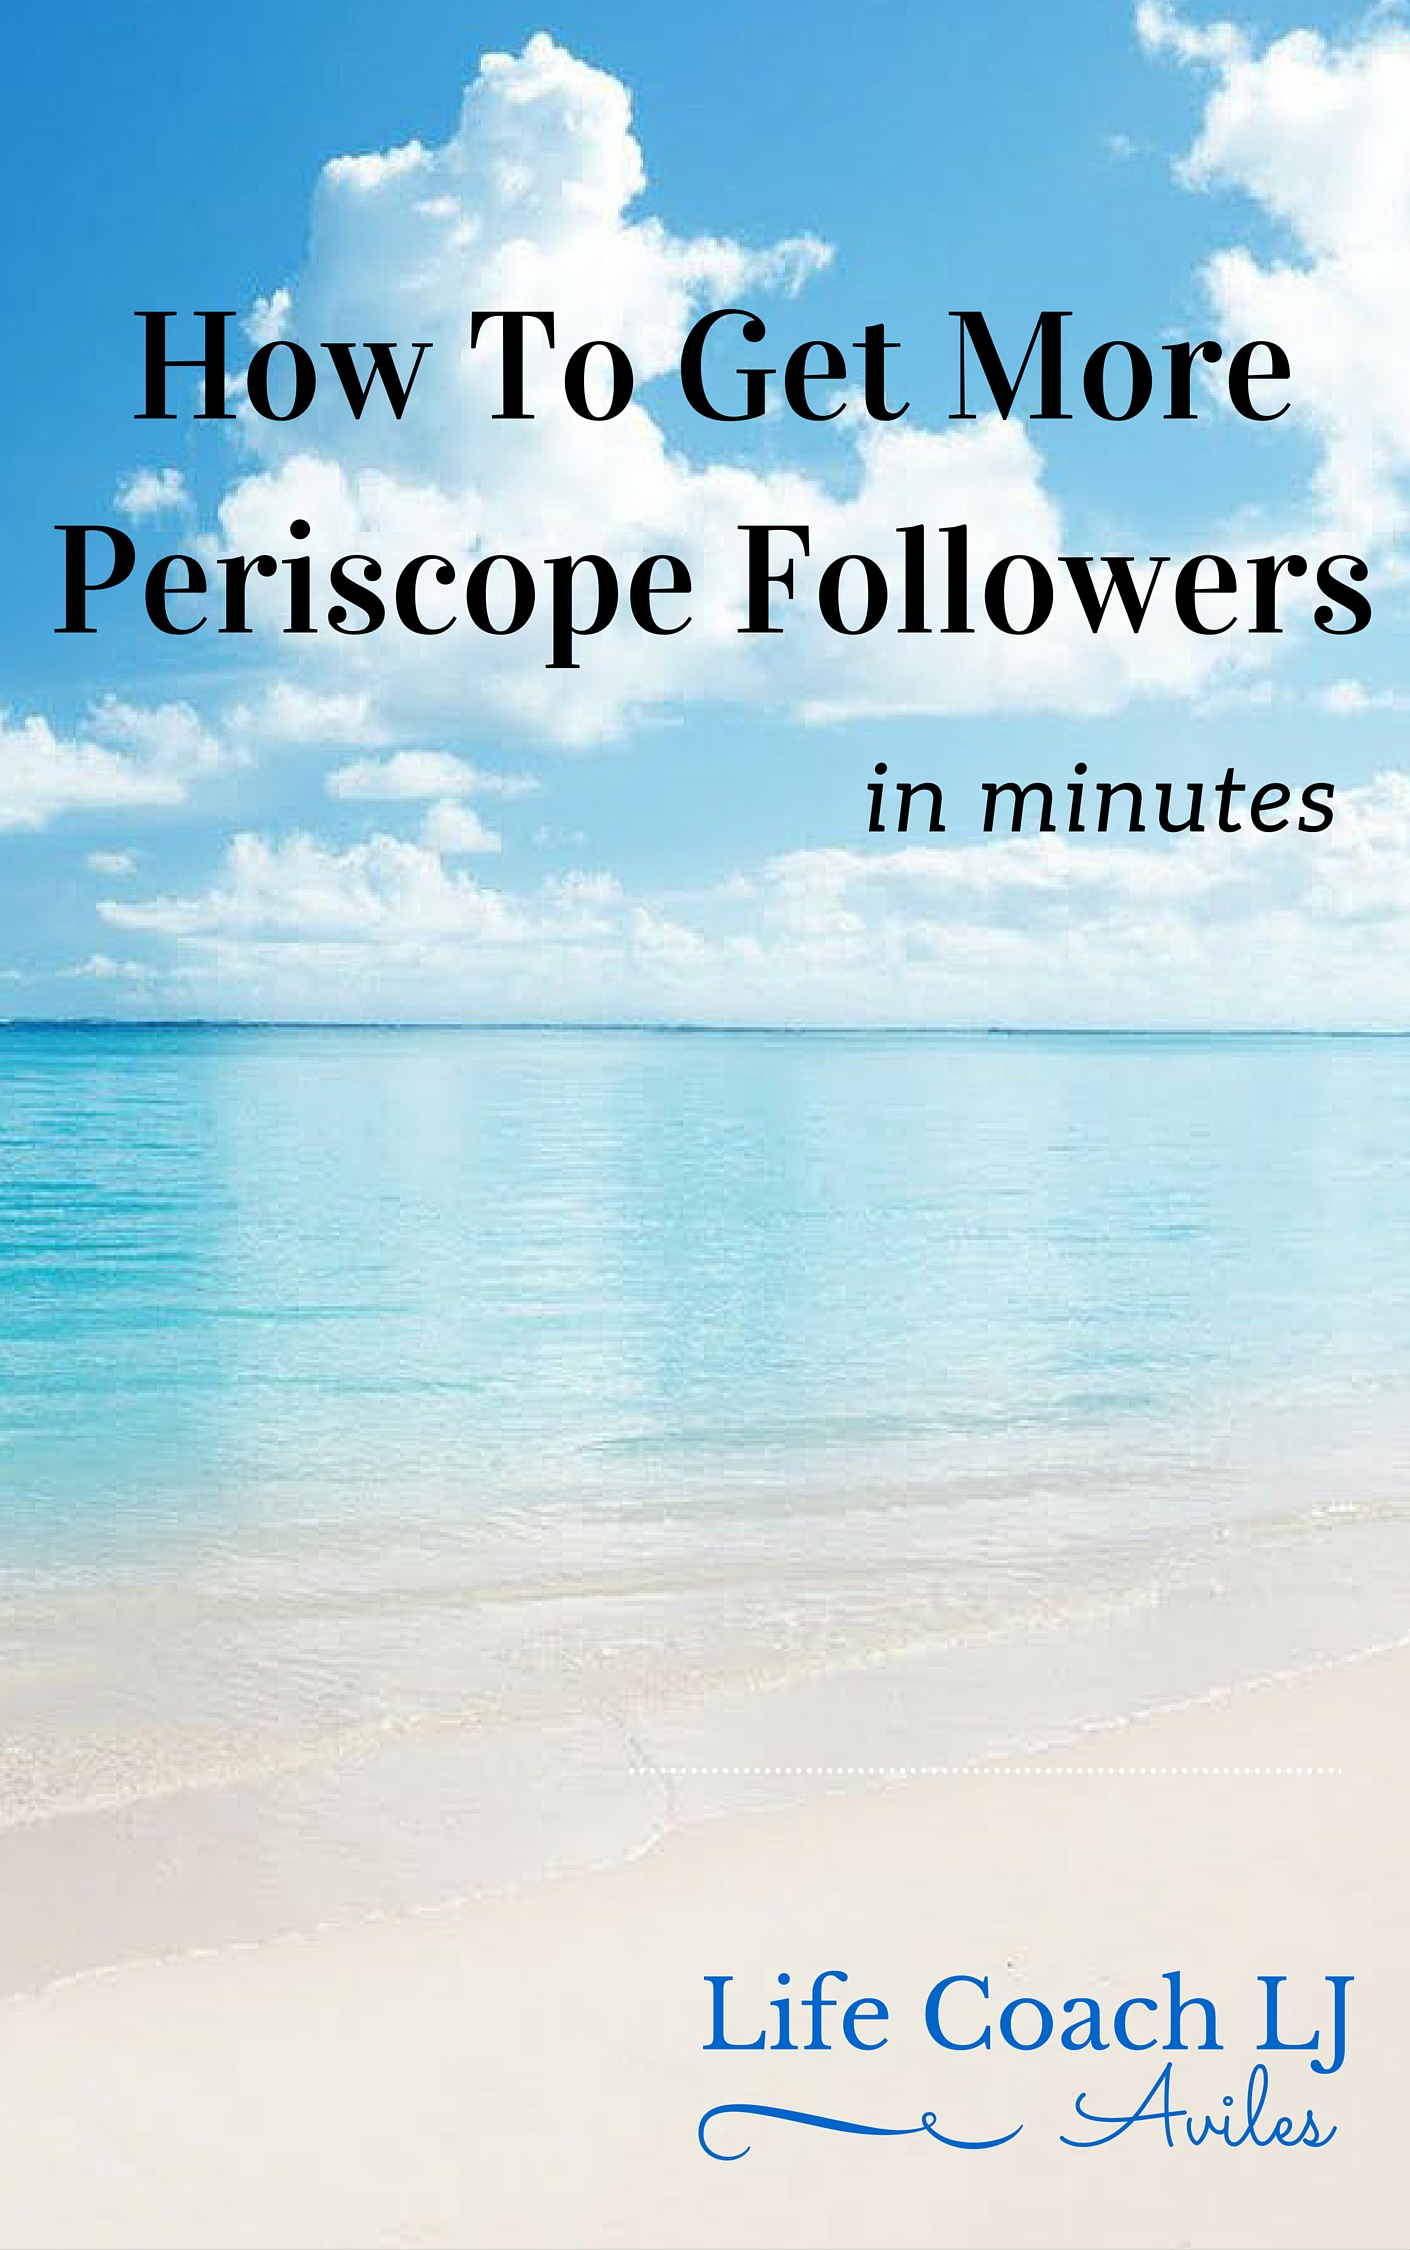 How To Get More Periscope Followers Ebook